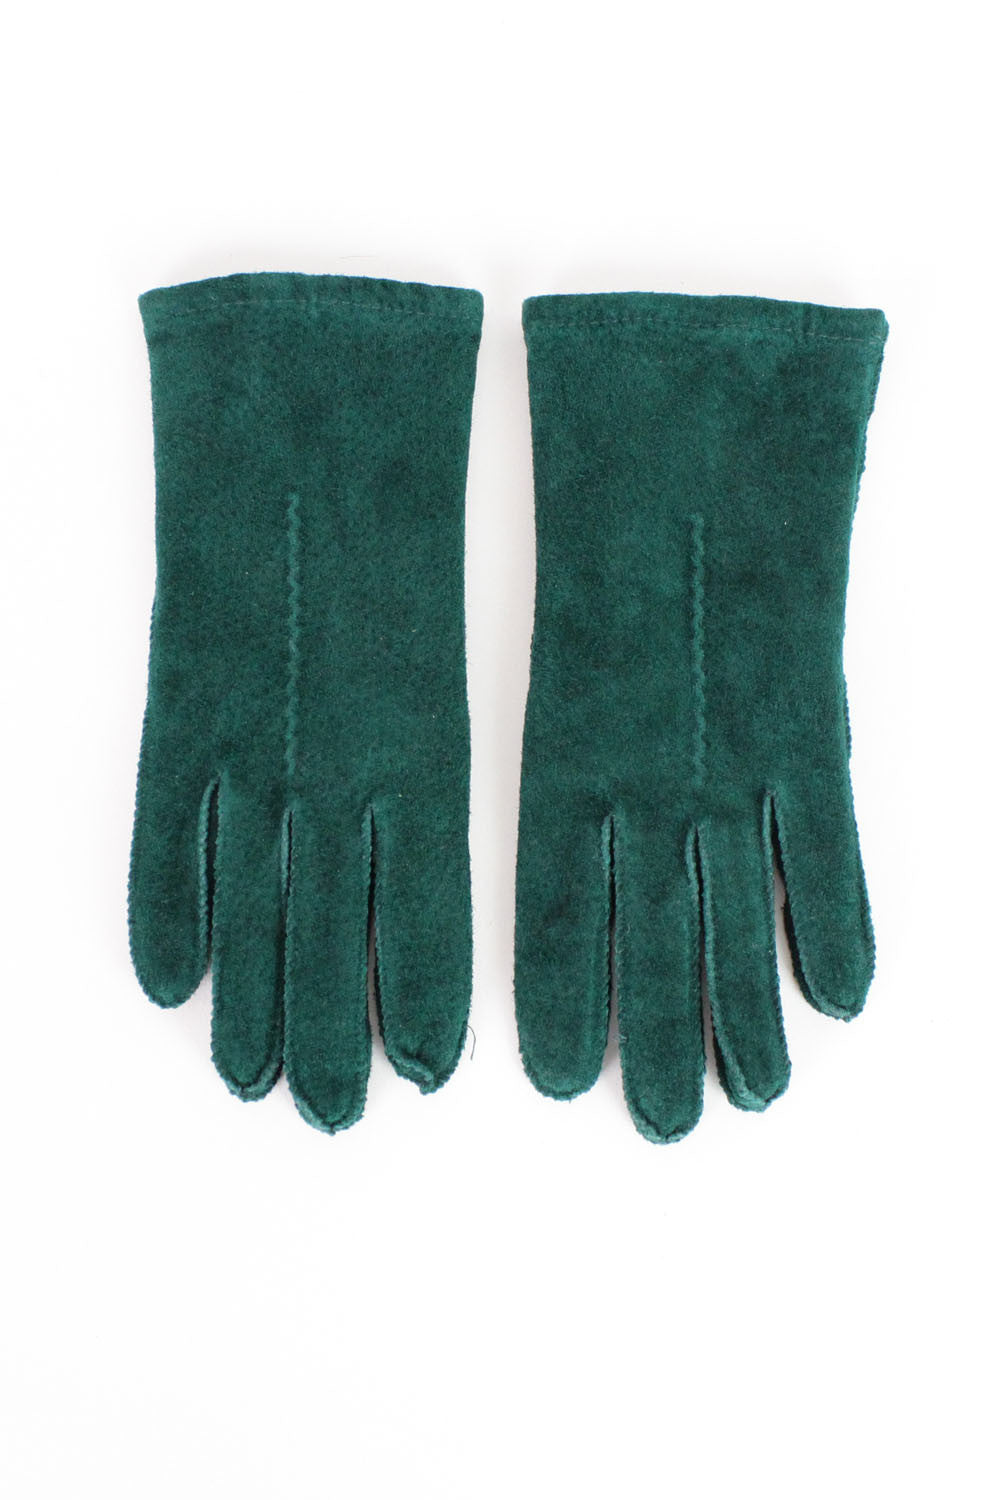 SALE...Forest Green Suede Gloves S/M